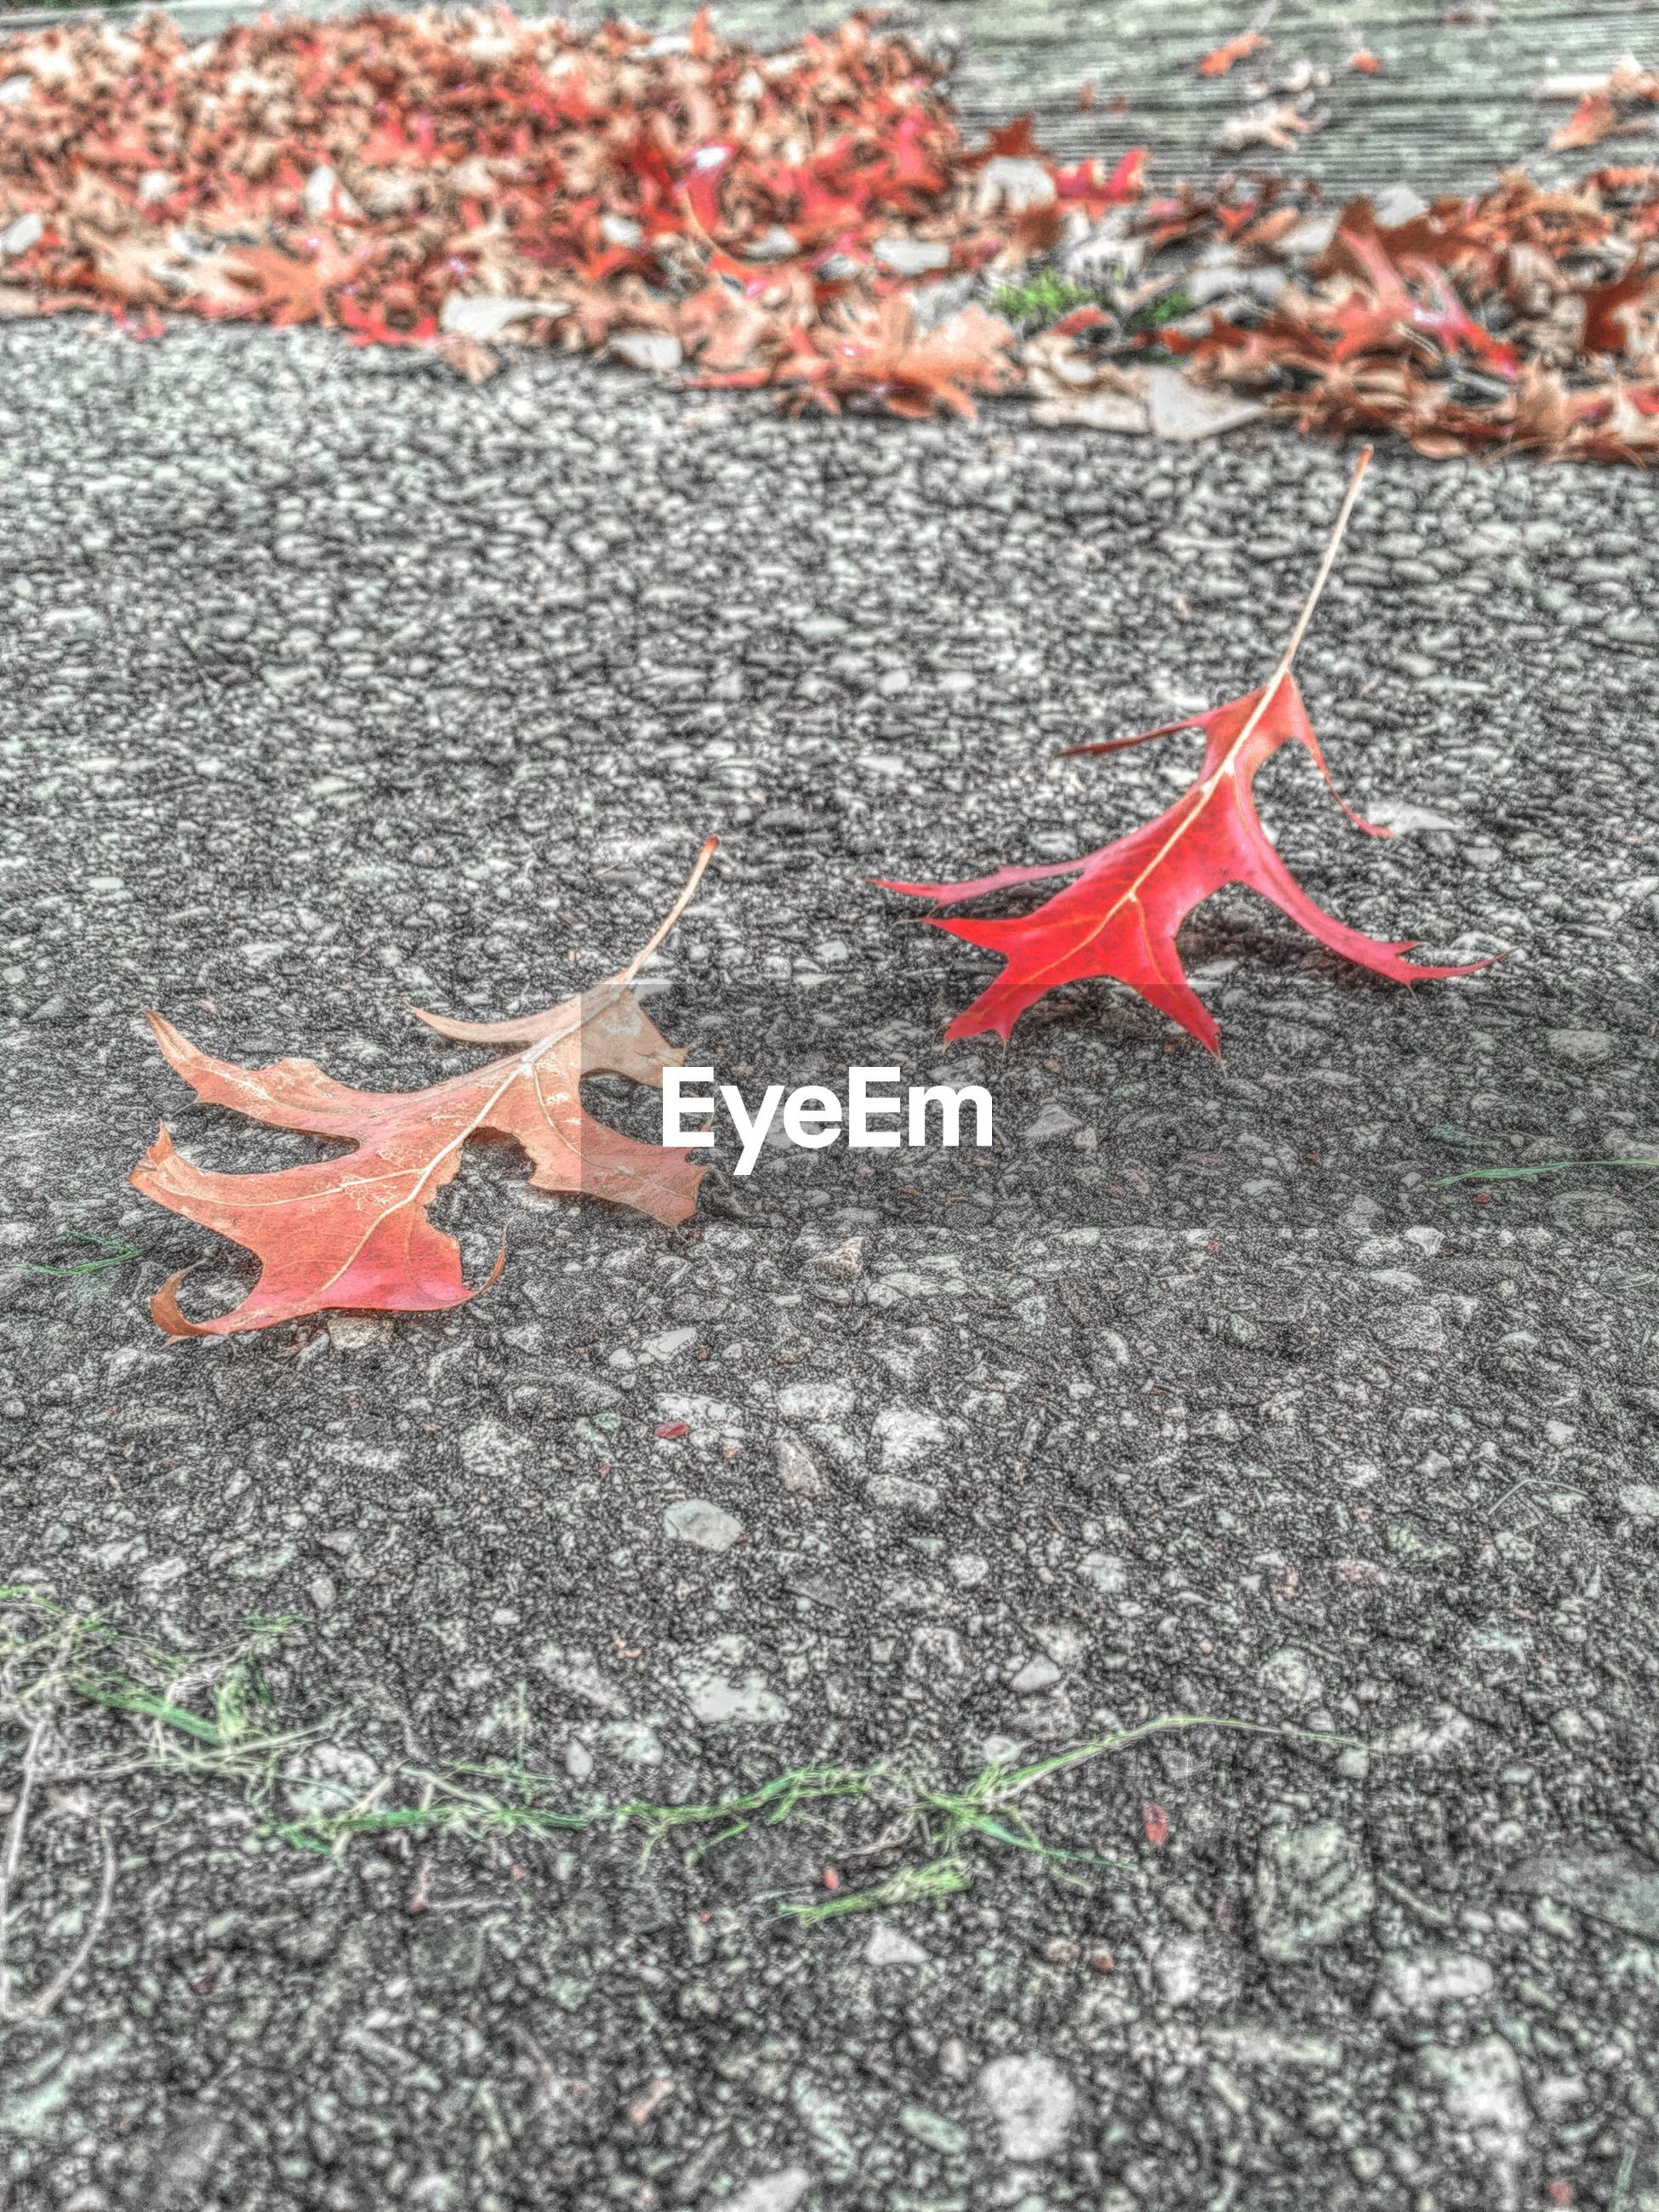 red, autumn, high angle view, leaf, change, asphalt, street, maple leaf, close-up, fallen, road, textured, dry, day, season, nature, ground, outdoors, no people, leaves